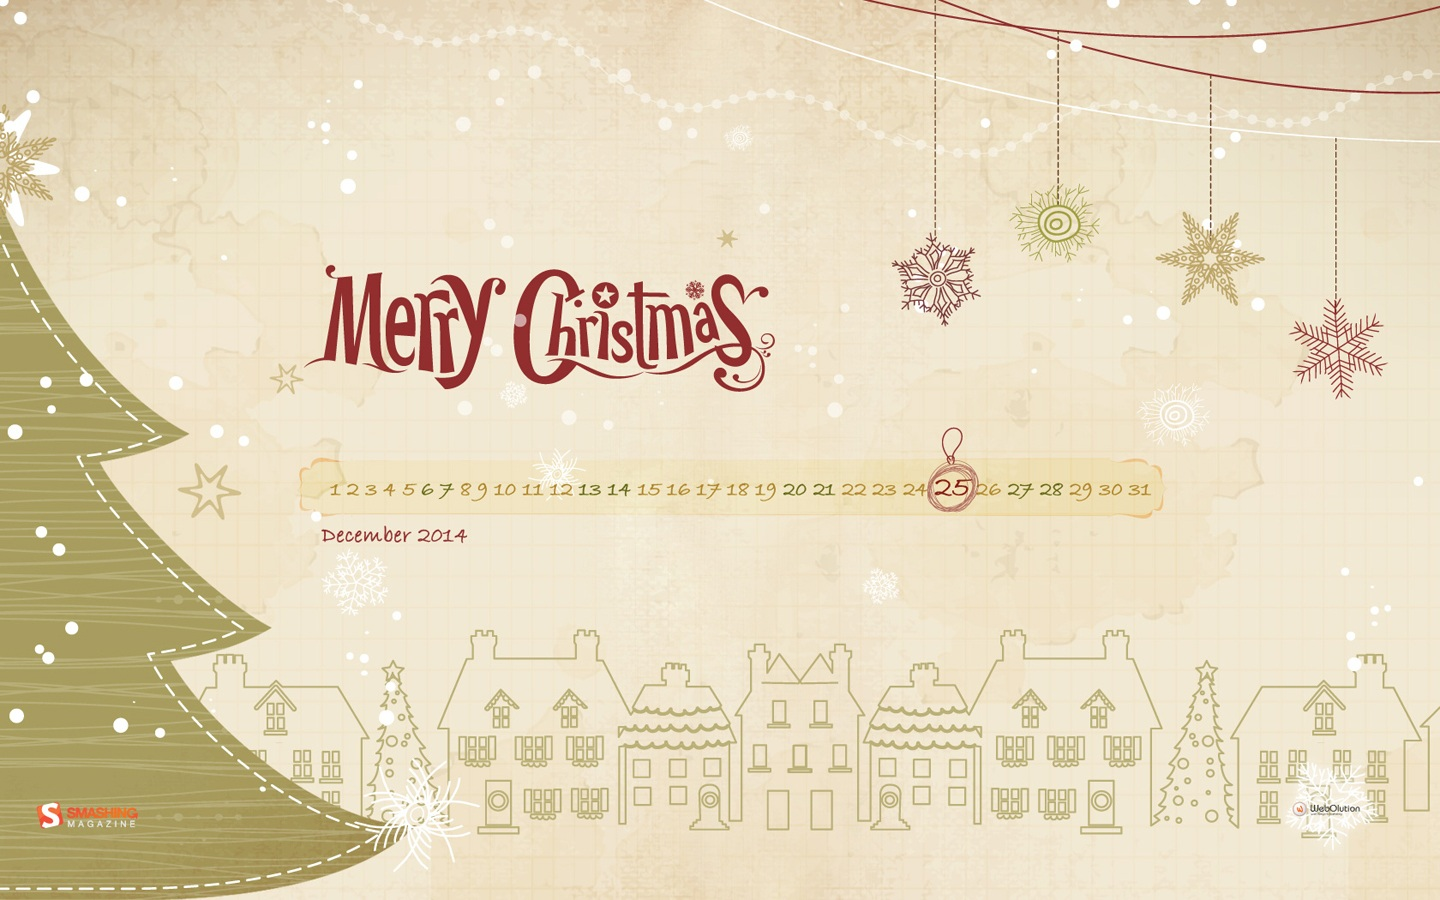 In January Calendar Wallpaper 51188